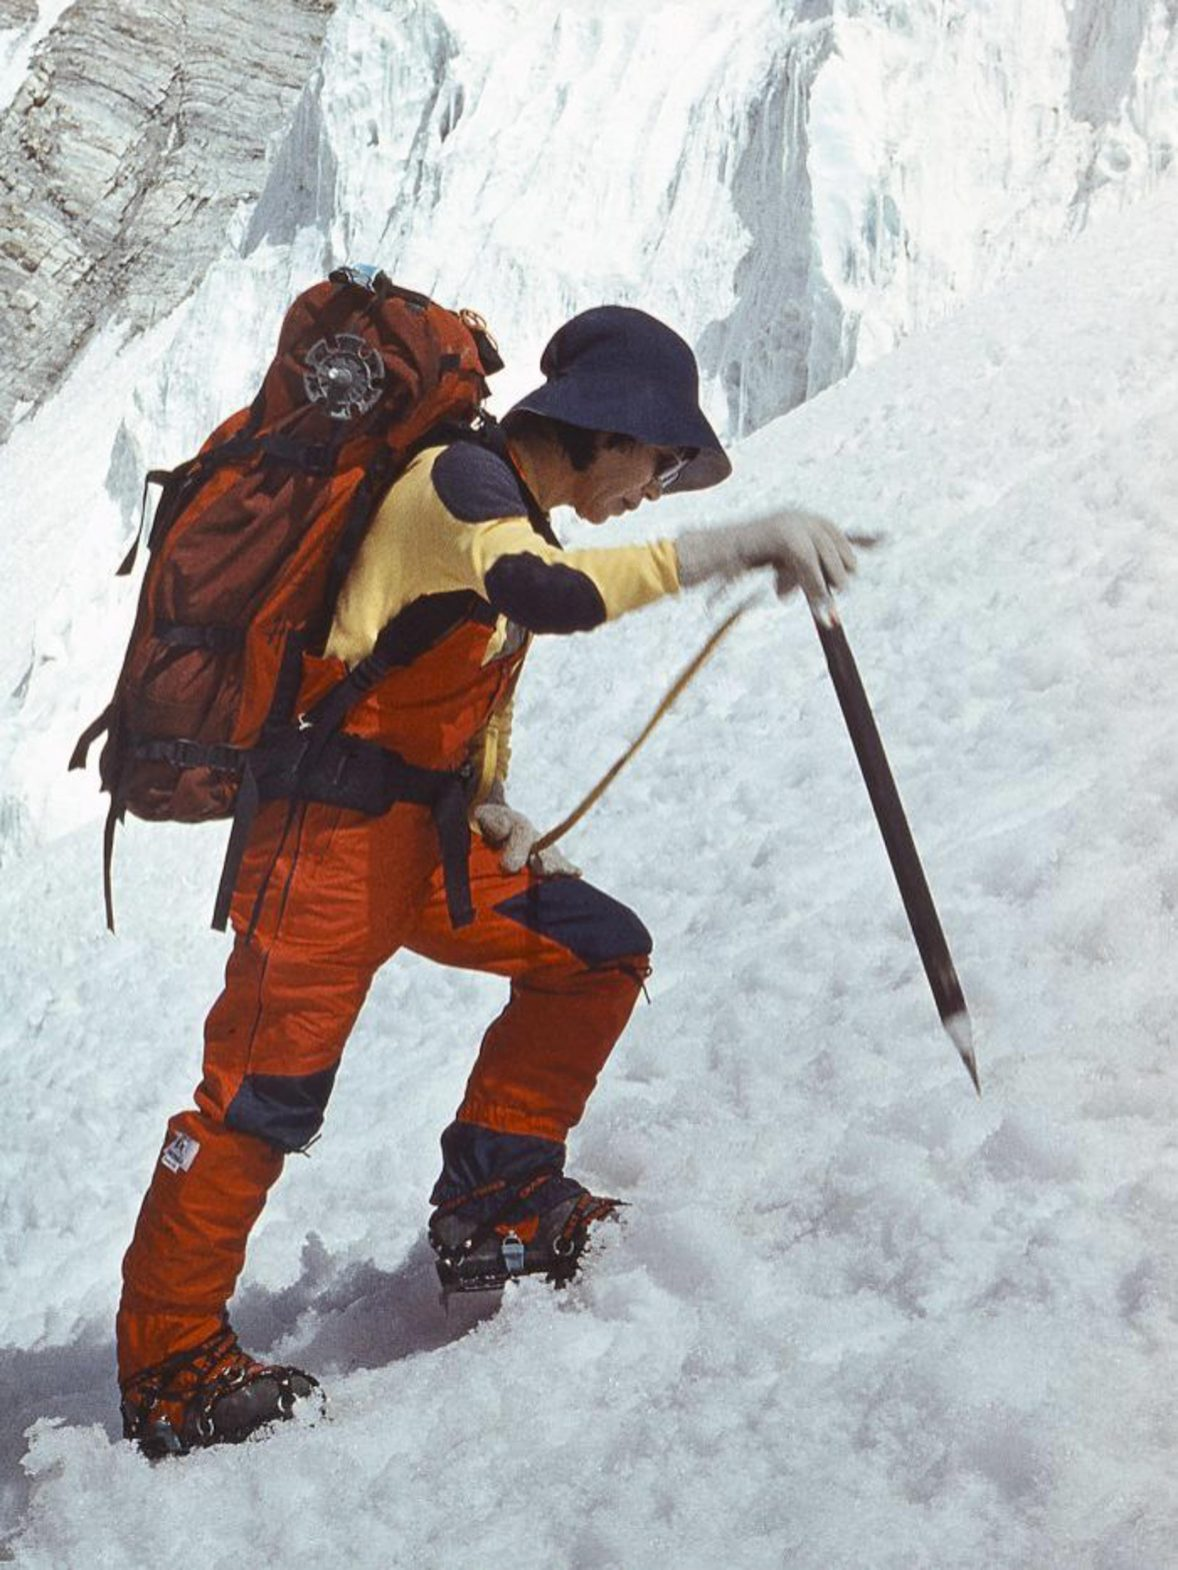 Japanese mountaineer Junko Tabei was the first woman to reach the peak of Everest.